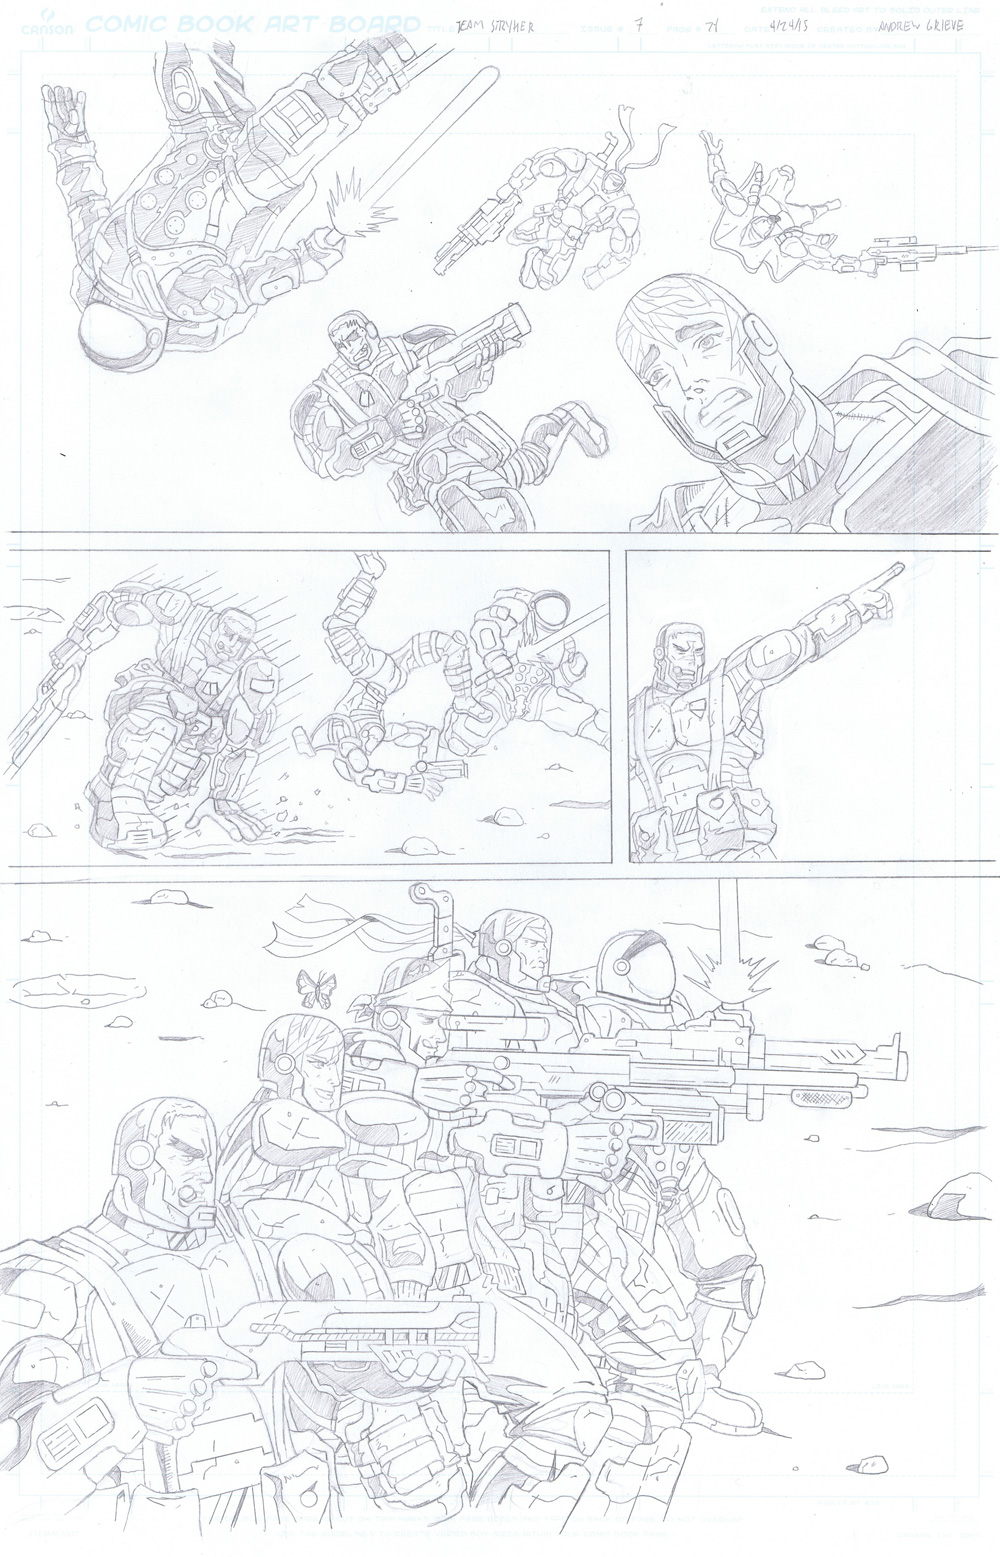 MISSION 007: PAGE 21 PENCIL